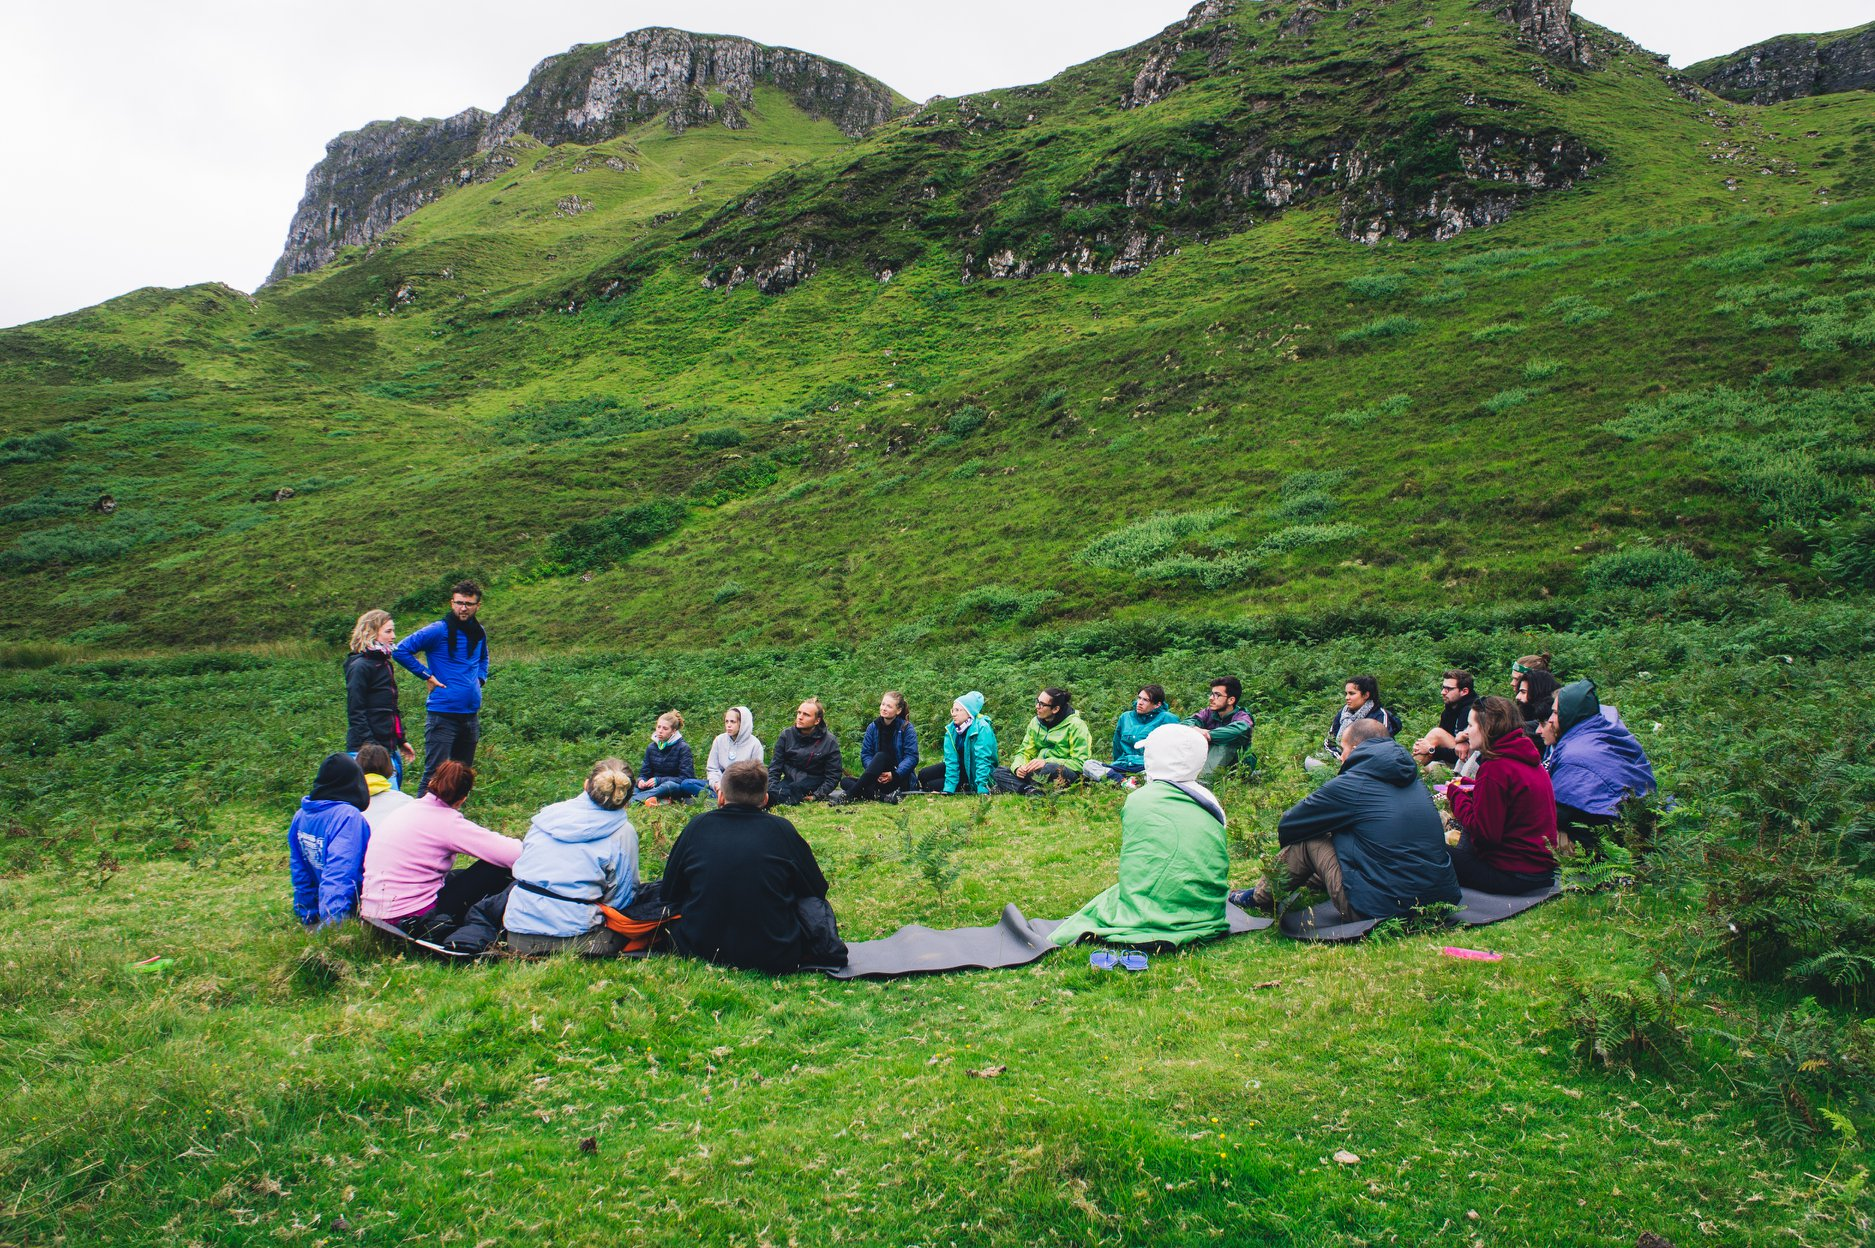 Training Course – East or West-Outdoors is the best - Scotland- abroadship.org